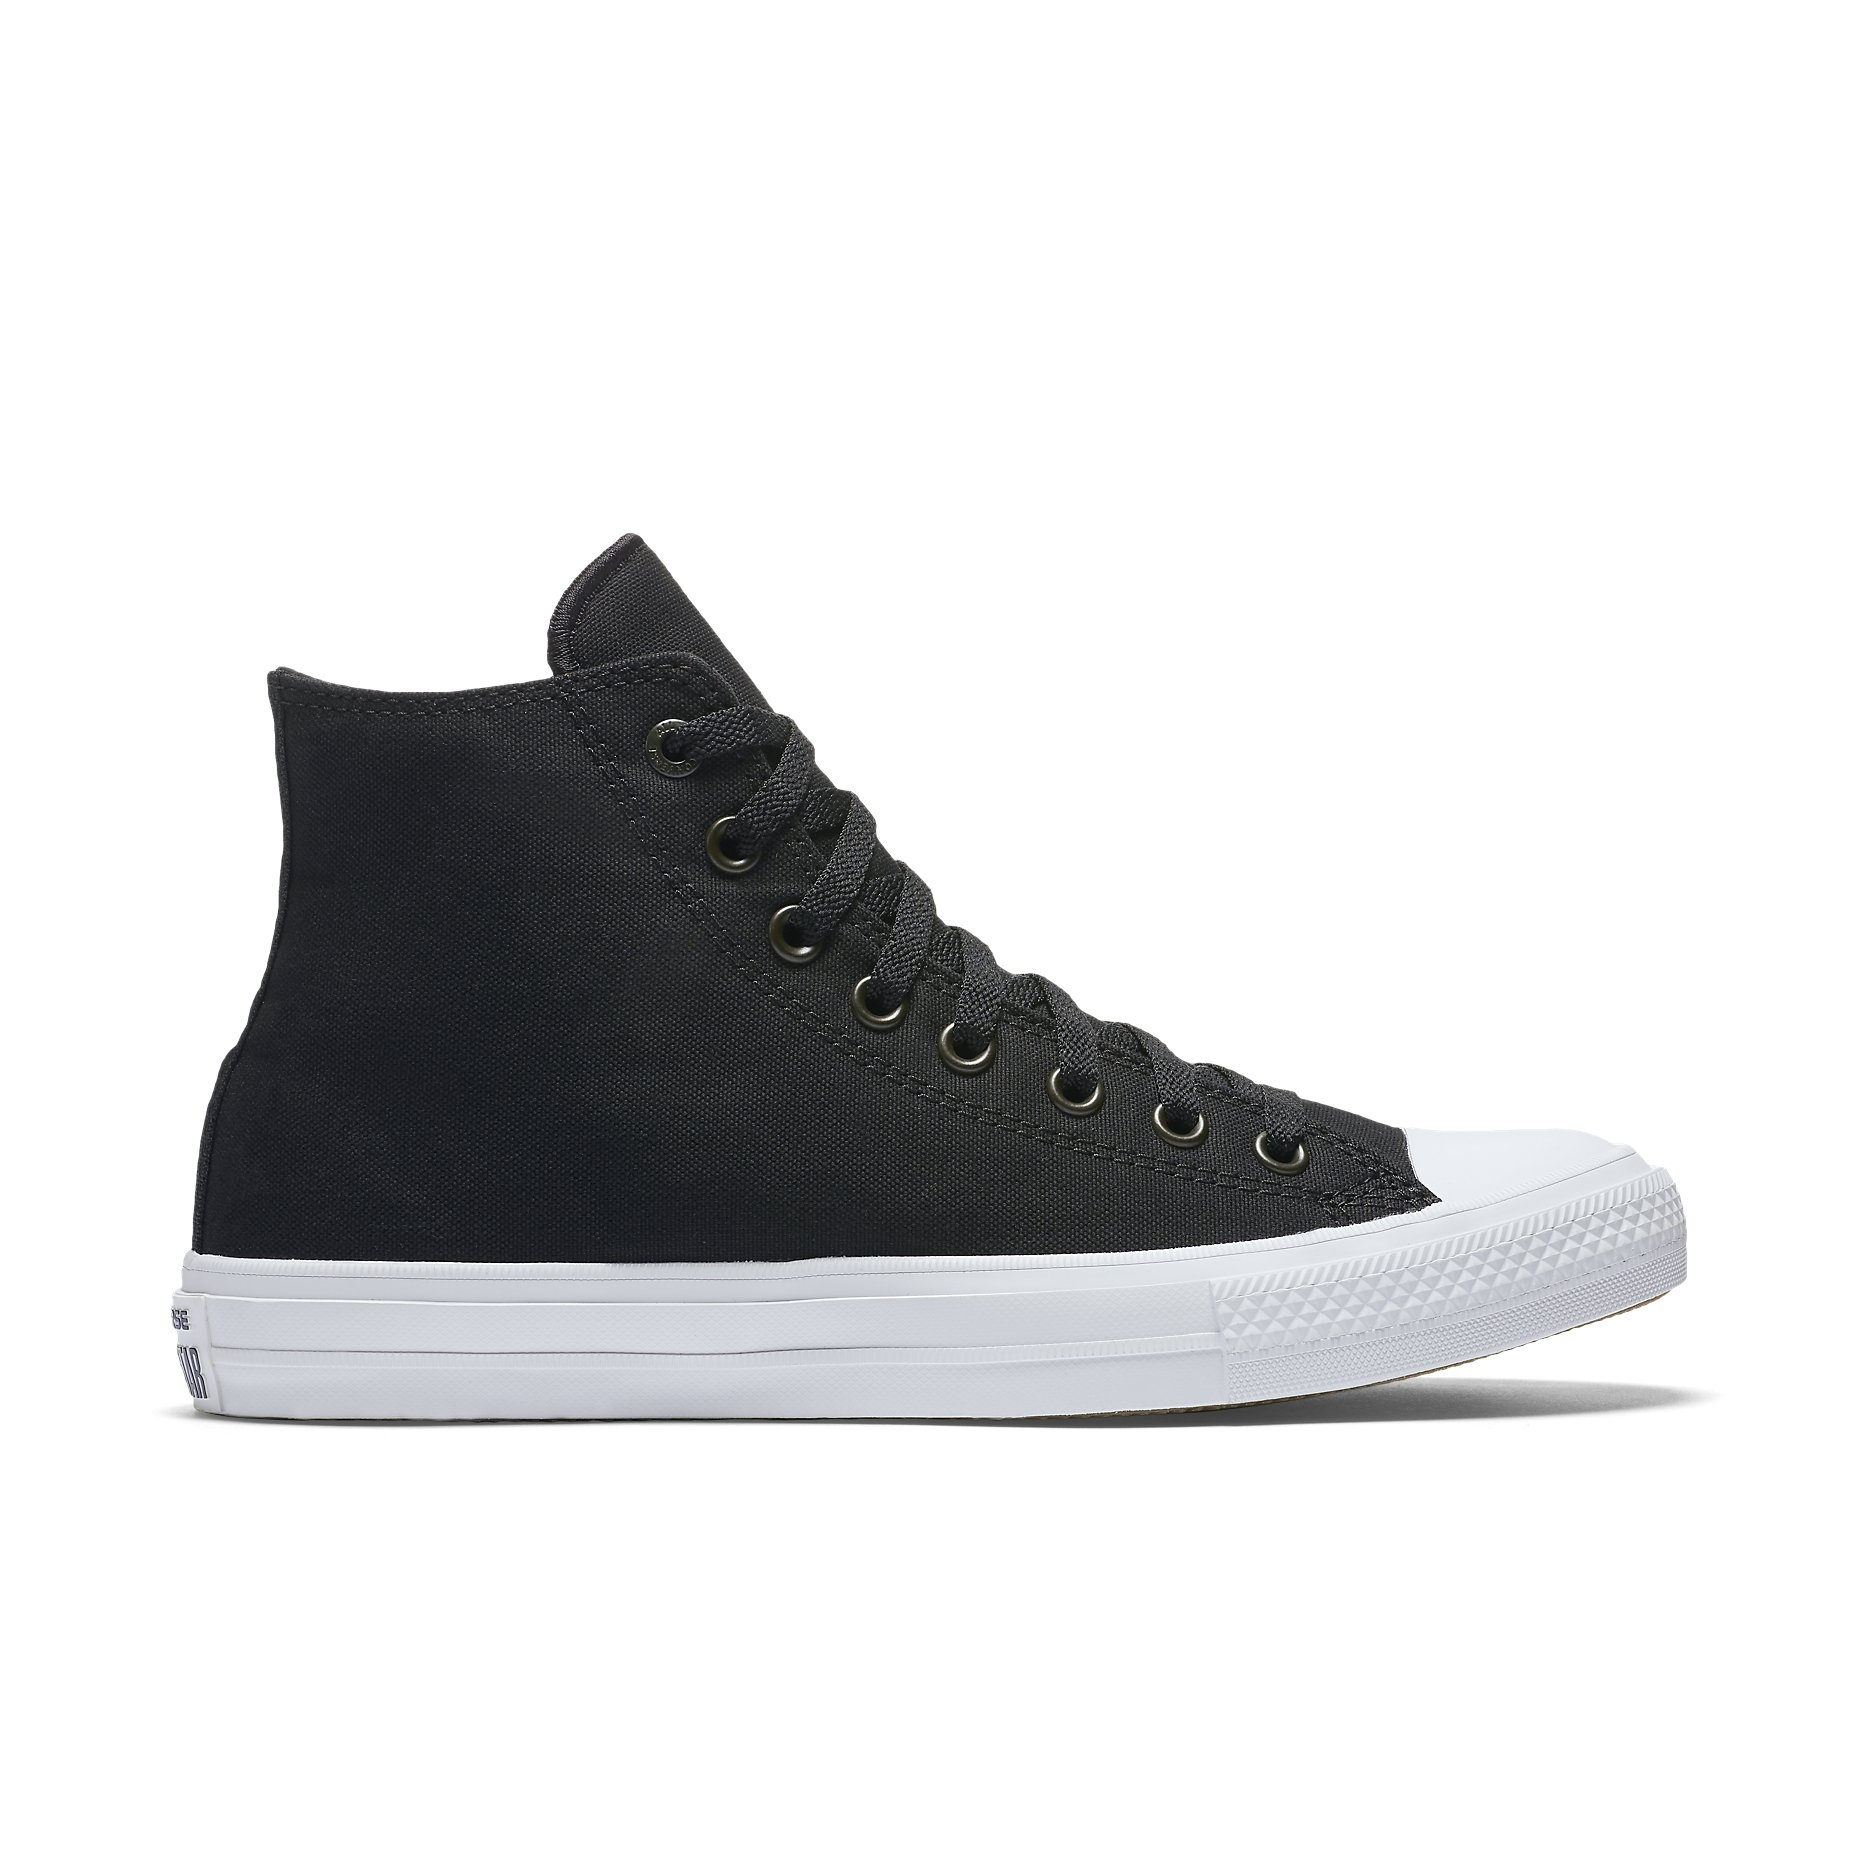 New Converse Chuck Taylor All Star II High Top Sneakers Canvas Men ... 5251903fe